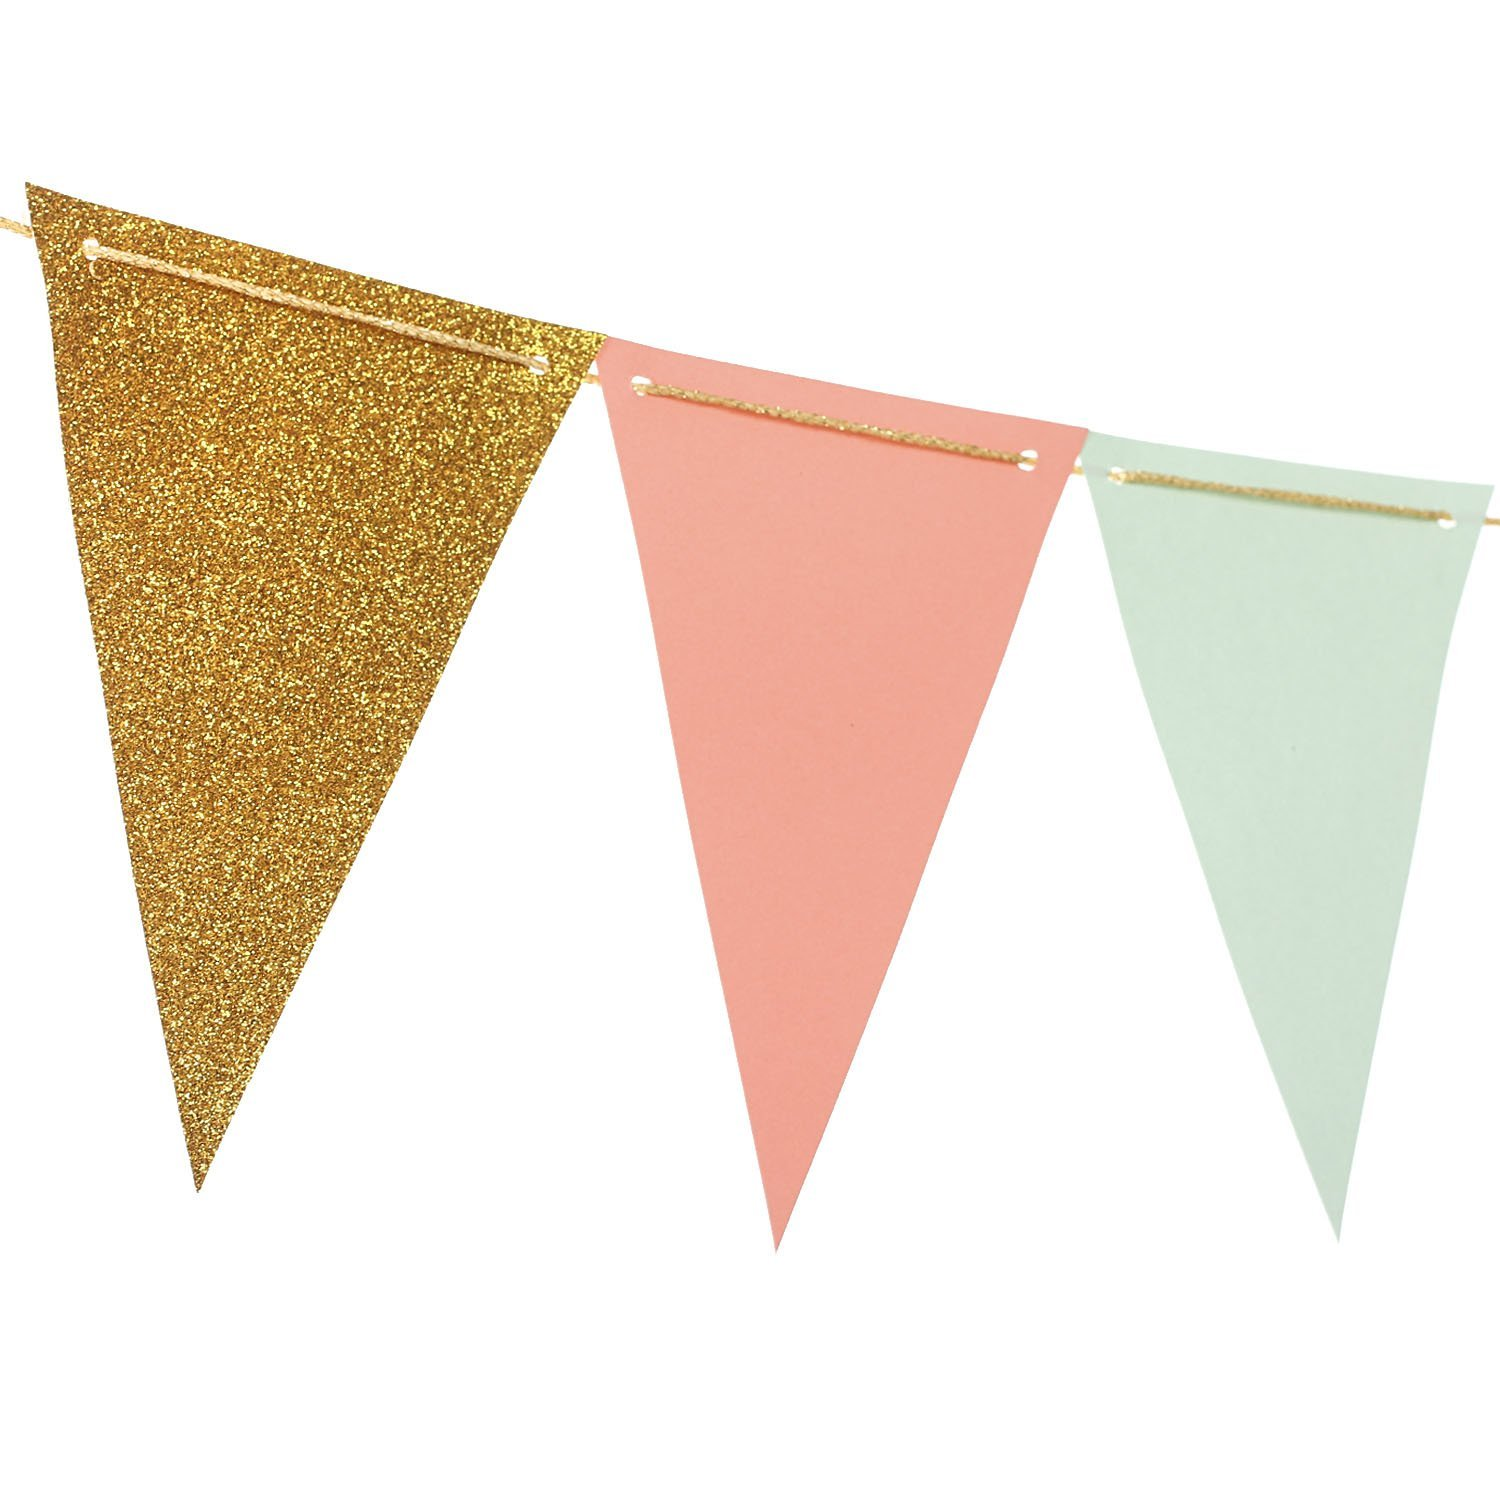 Ling's moment 10 Feet Paper Banner Flags Triangle Banner Flags Vintage Style Pennant Banner for Wedding, Baby Shower, Event & Party Supplies, 15pcs Flags(Mint+Coral+Gold Glitter)